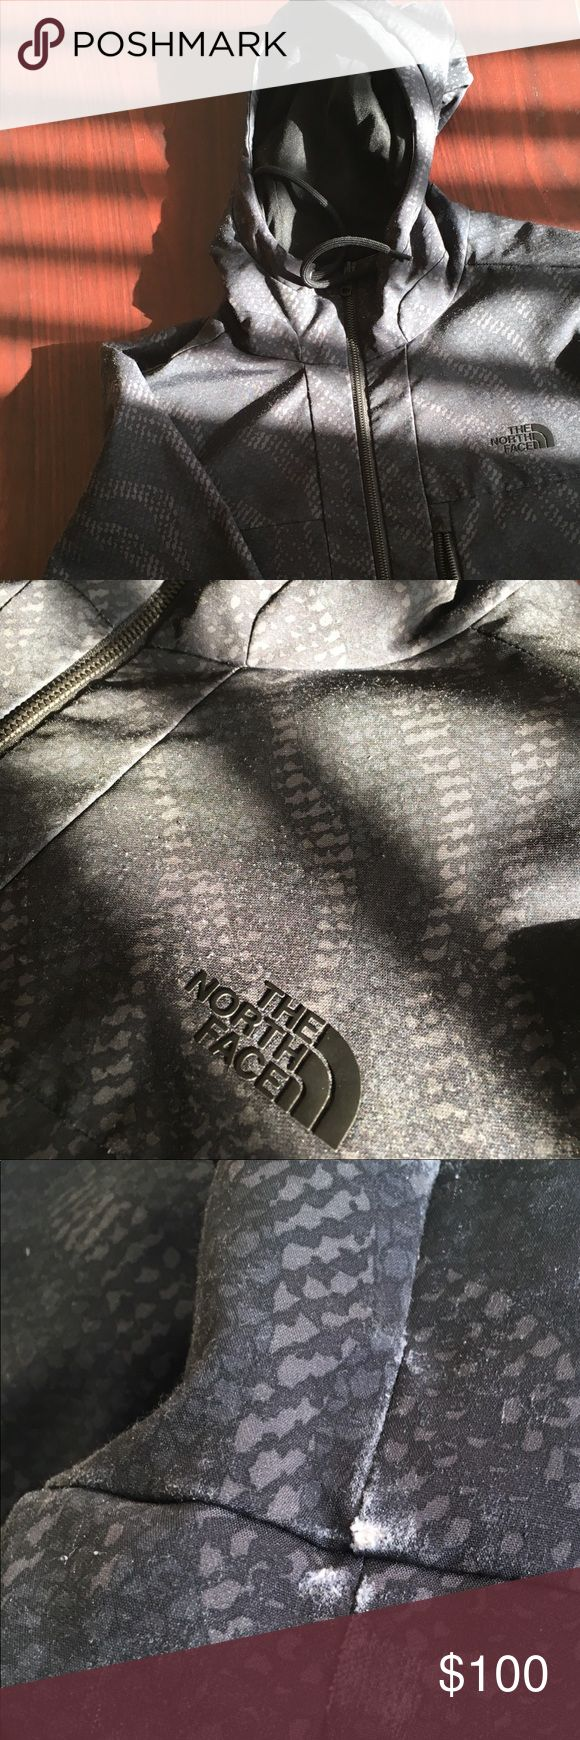 Black north face windbreaker Black digital camo print wind breaker by the northface  Good condition. A little fade at the bottom. Not noticeable.   Fits perfect to size.   Willing to negotiate offer. The North Face Jackets & Coats Windbreakers